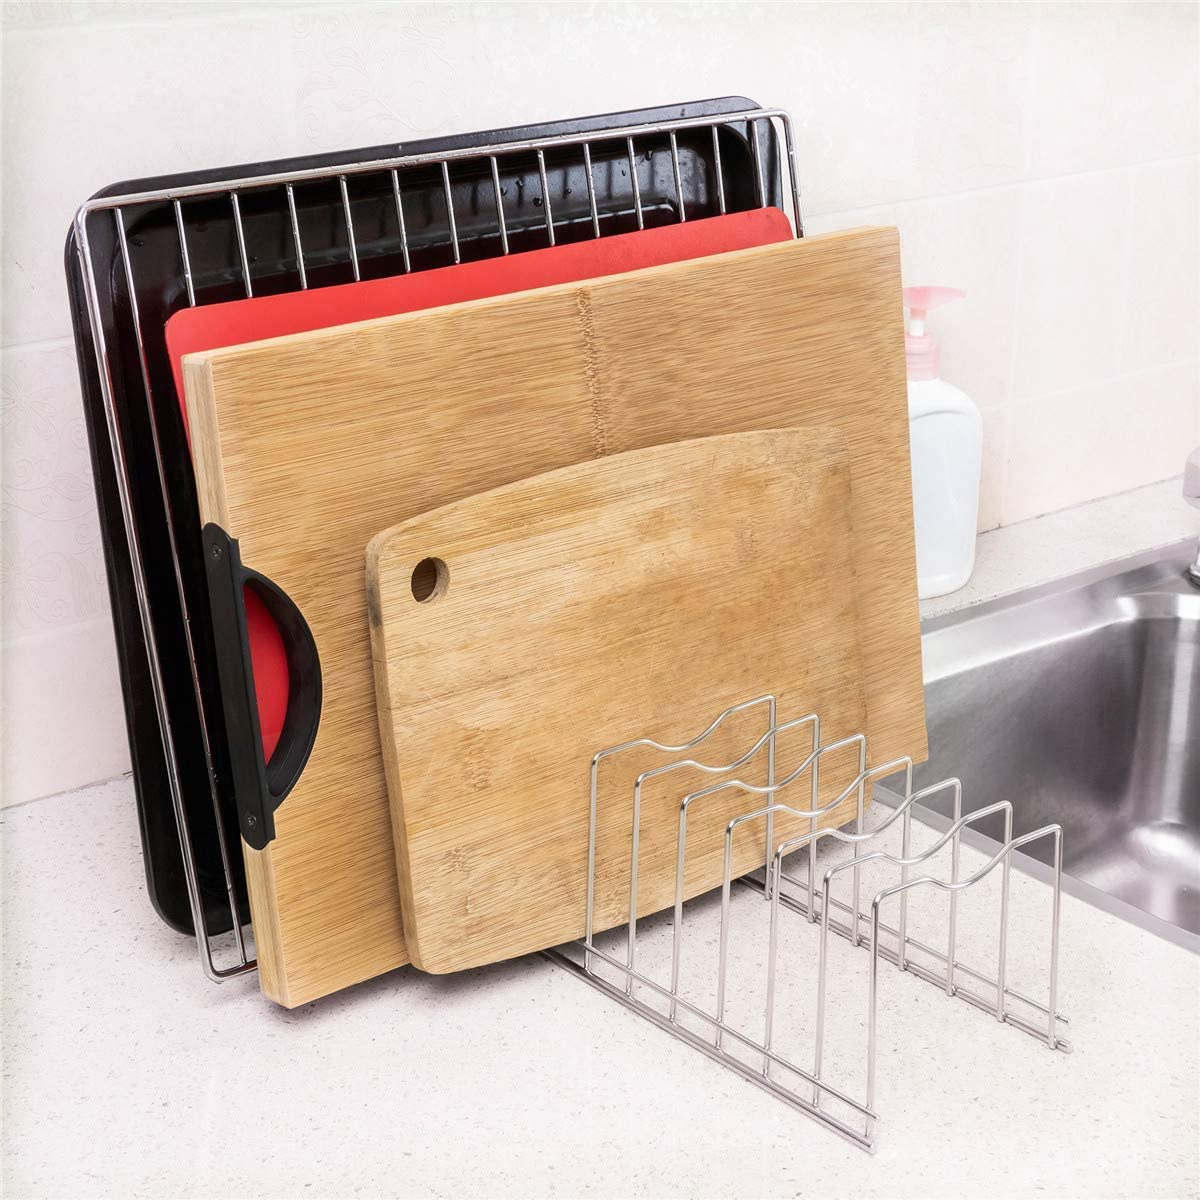 Bakeware Cutting Boards Serving Trays SANNO Pot Lid Holder Pan Lid Organizer Rack Cupboard Organizer Rack Stainless Steel Plates Pack of 1 Cooling Rack Kitchen Organizer Rack for Pot Lids